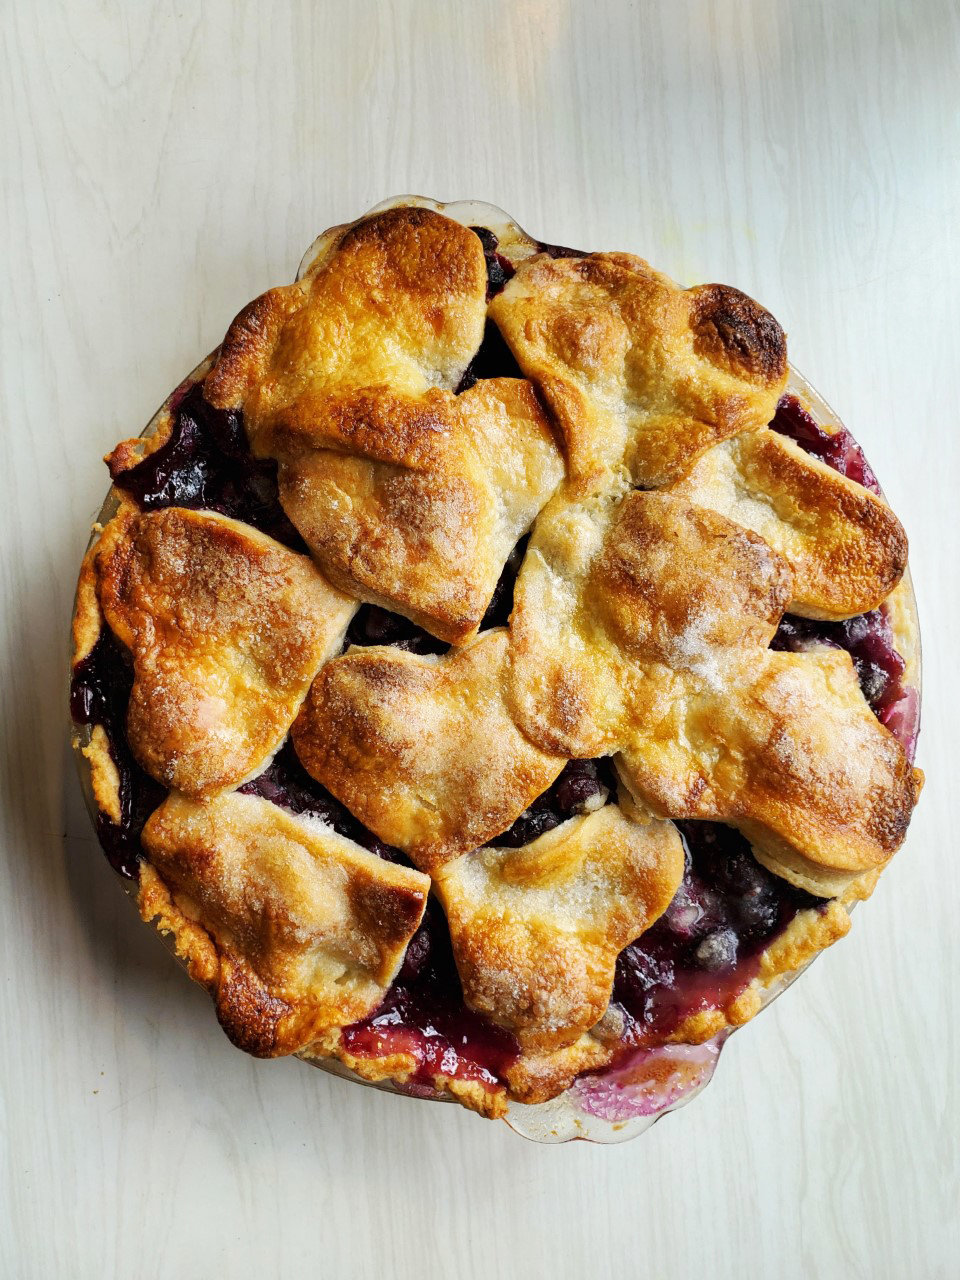 Blueberry pie, made with fresh-picked blueberries, with heart-shaped cut outs for the crust.